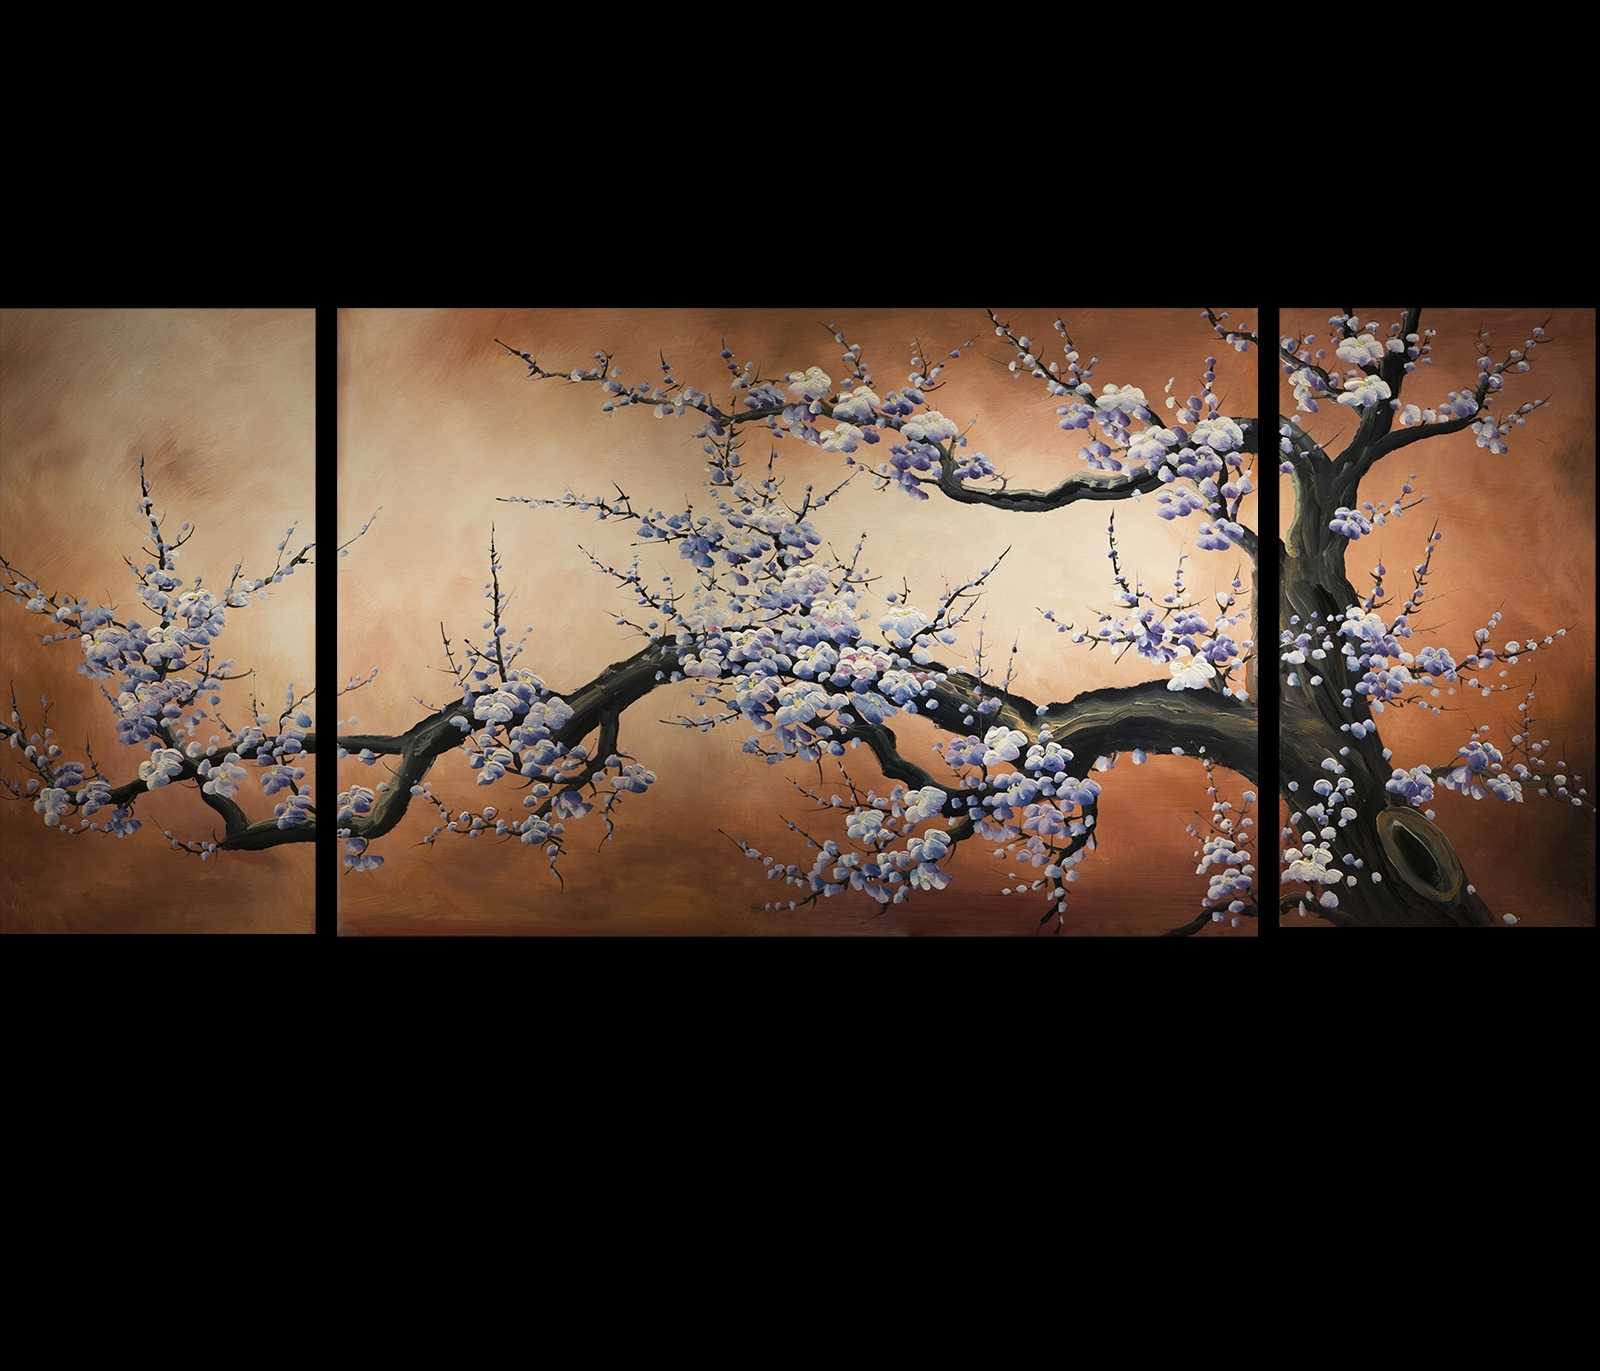 Abstract Art Prints On Canvas Modern Art Cherry Blossom Painting Within Recent Abstract Cherry Blossom Wall Art (View 8 of 20)